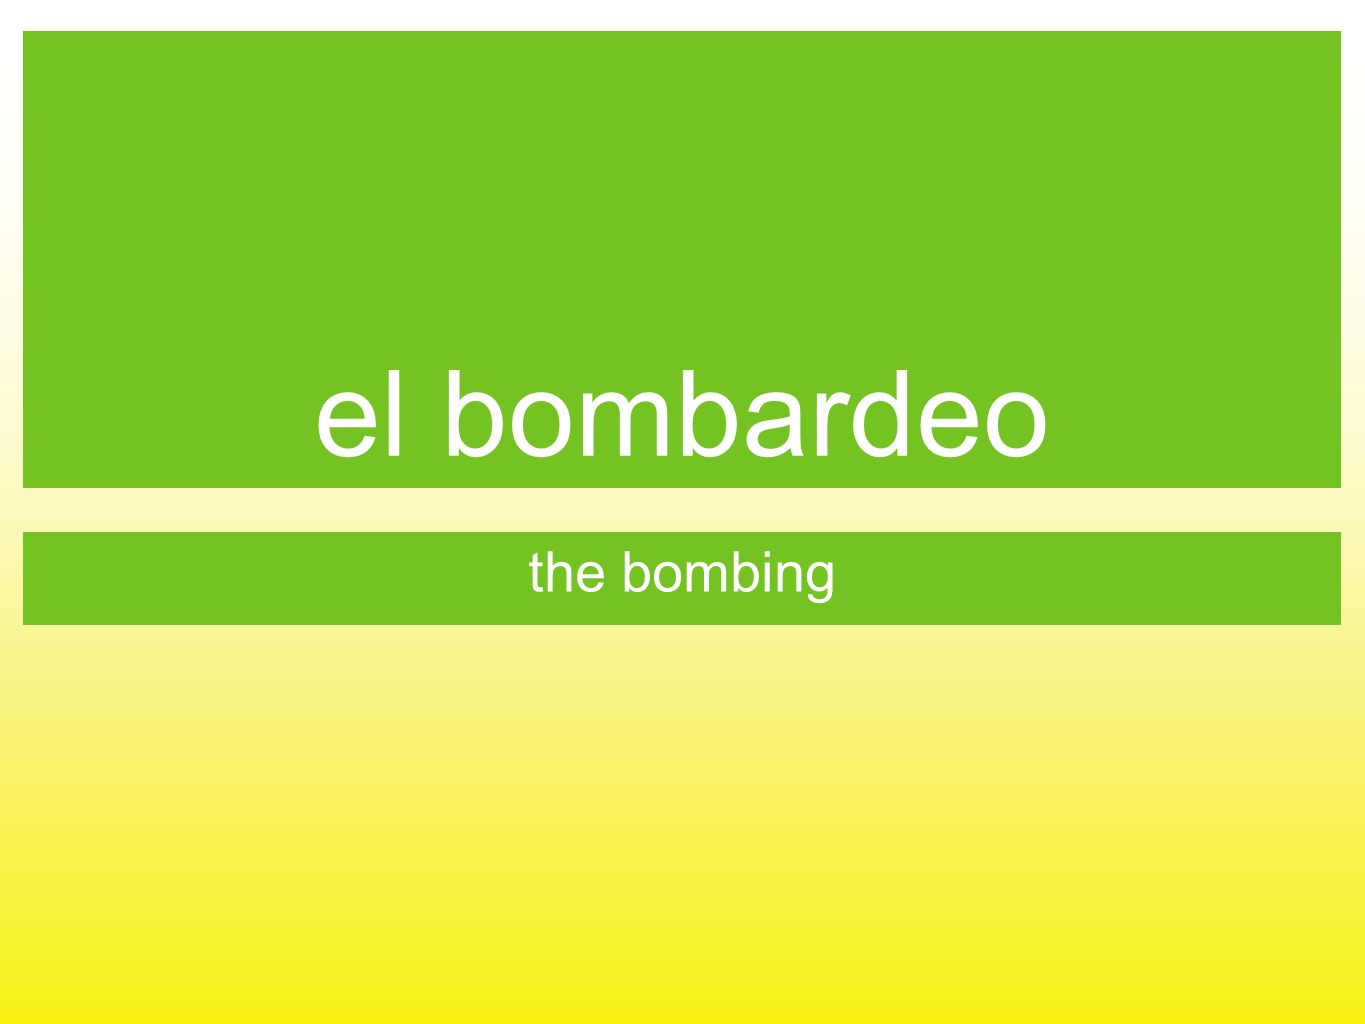 el bombardeo the bombing